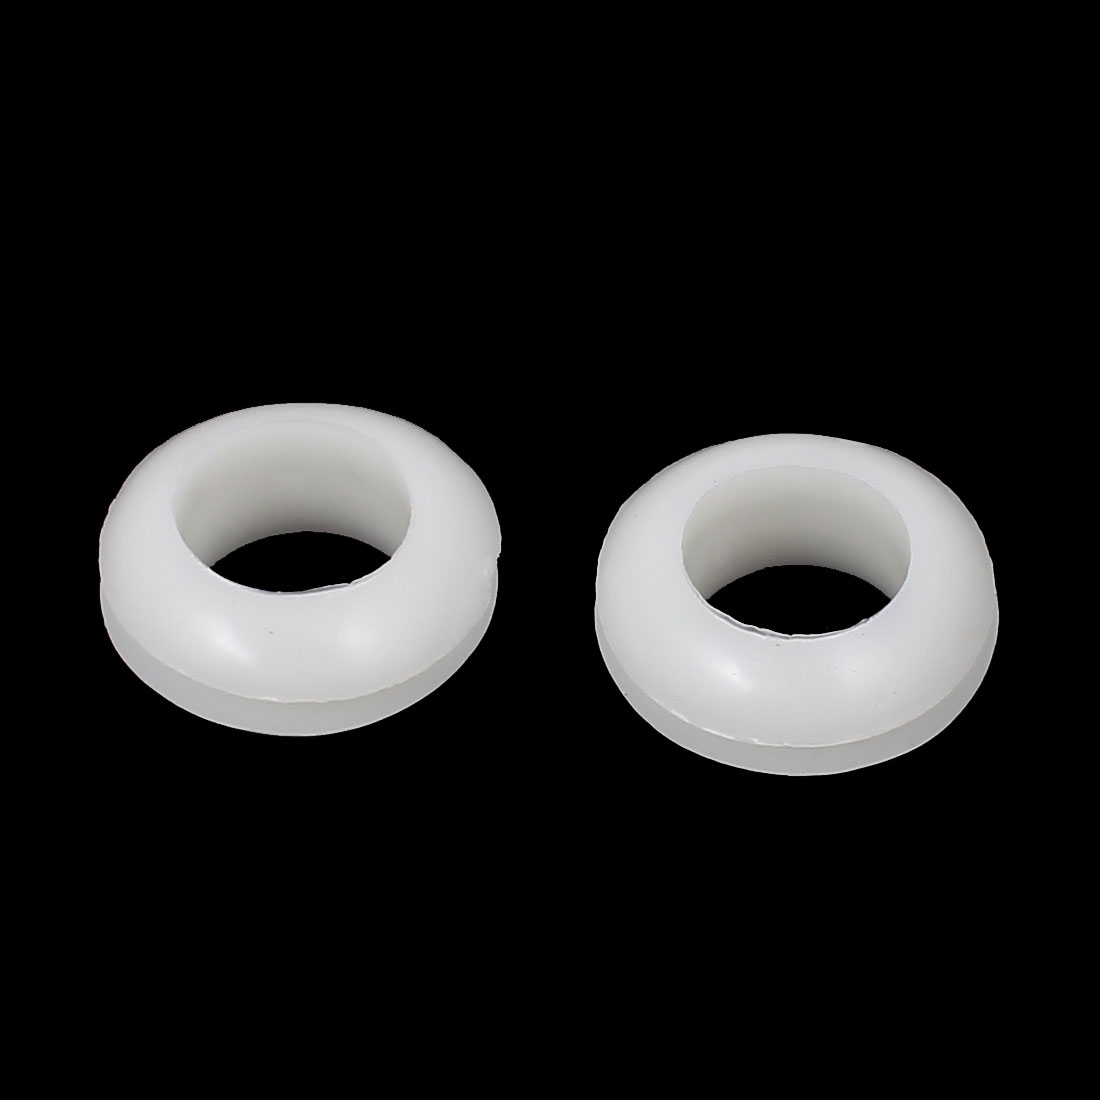 medium resolution of electric cable protector rubber wiring grommets white 10mm inner electric cable protector rubber wiring grommets white